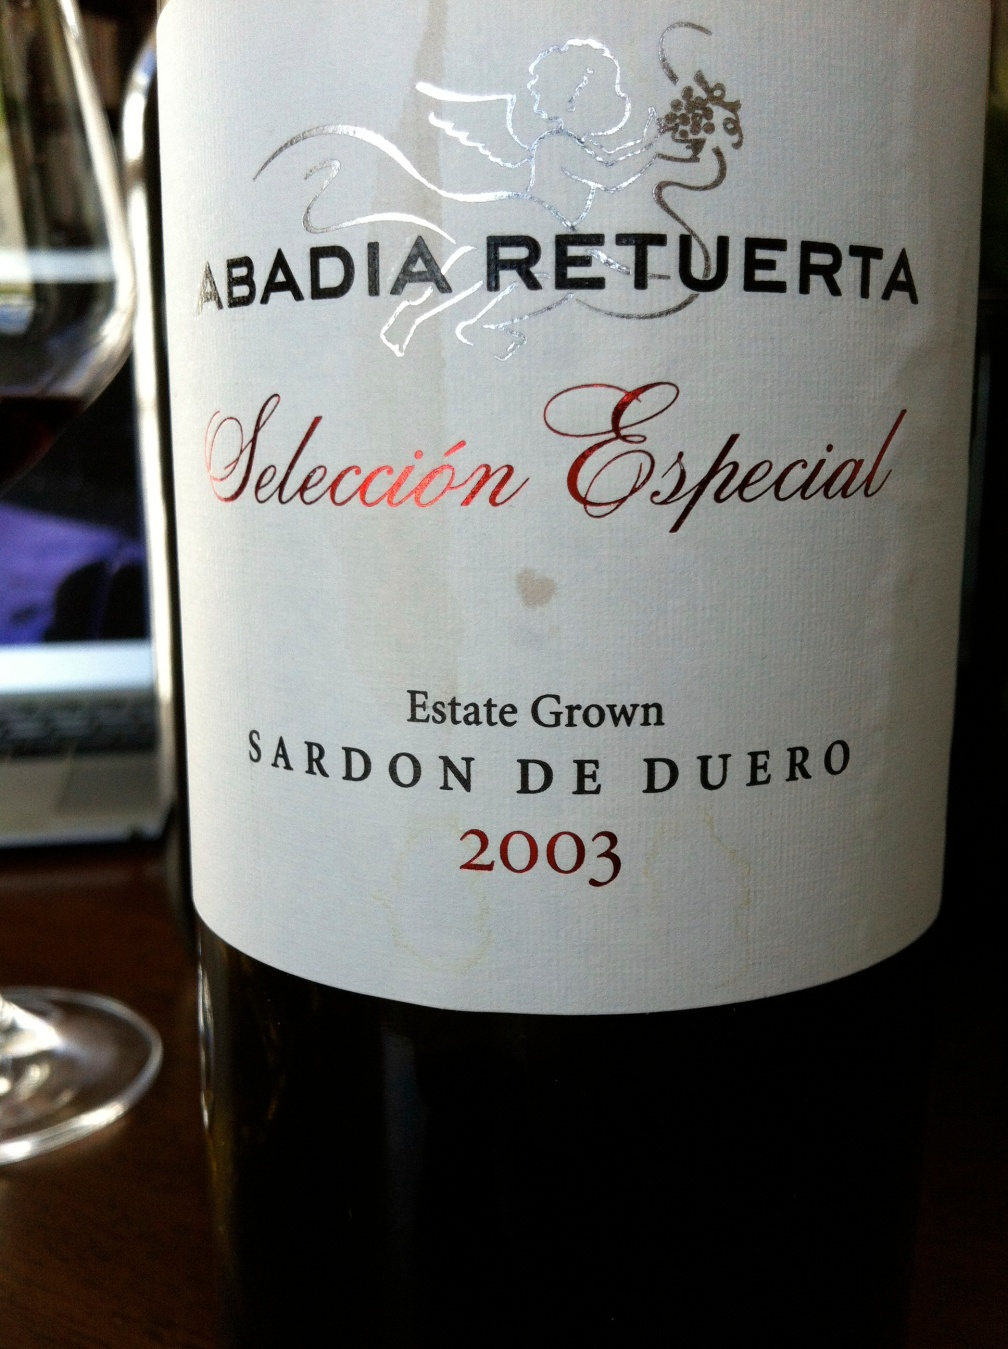 A Gem from Spain: Abadia Retuerta